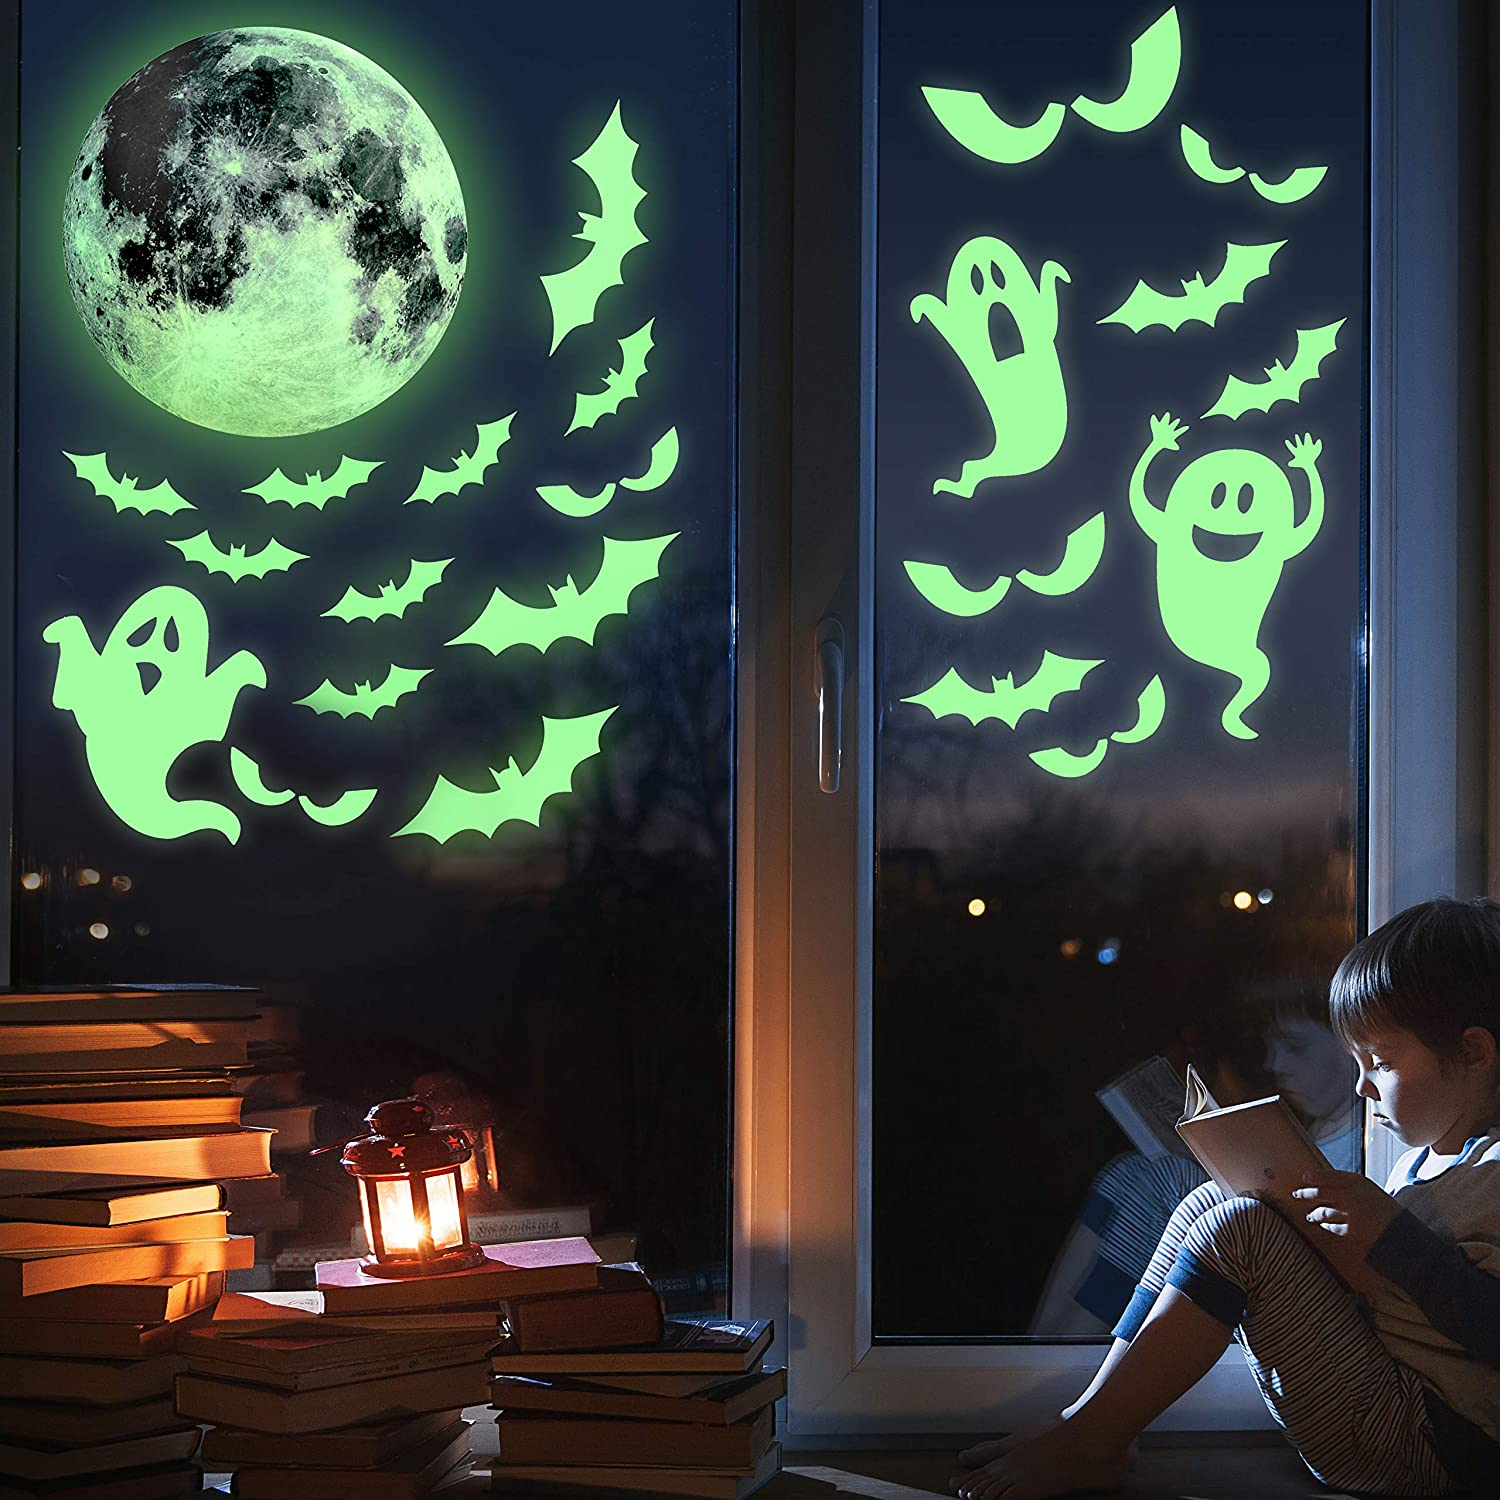 Kompanion 38 Piece Halloween Glow in the Dark Window Decals Set, Spooky Decorations, Stickers and Decor for Halloween.